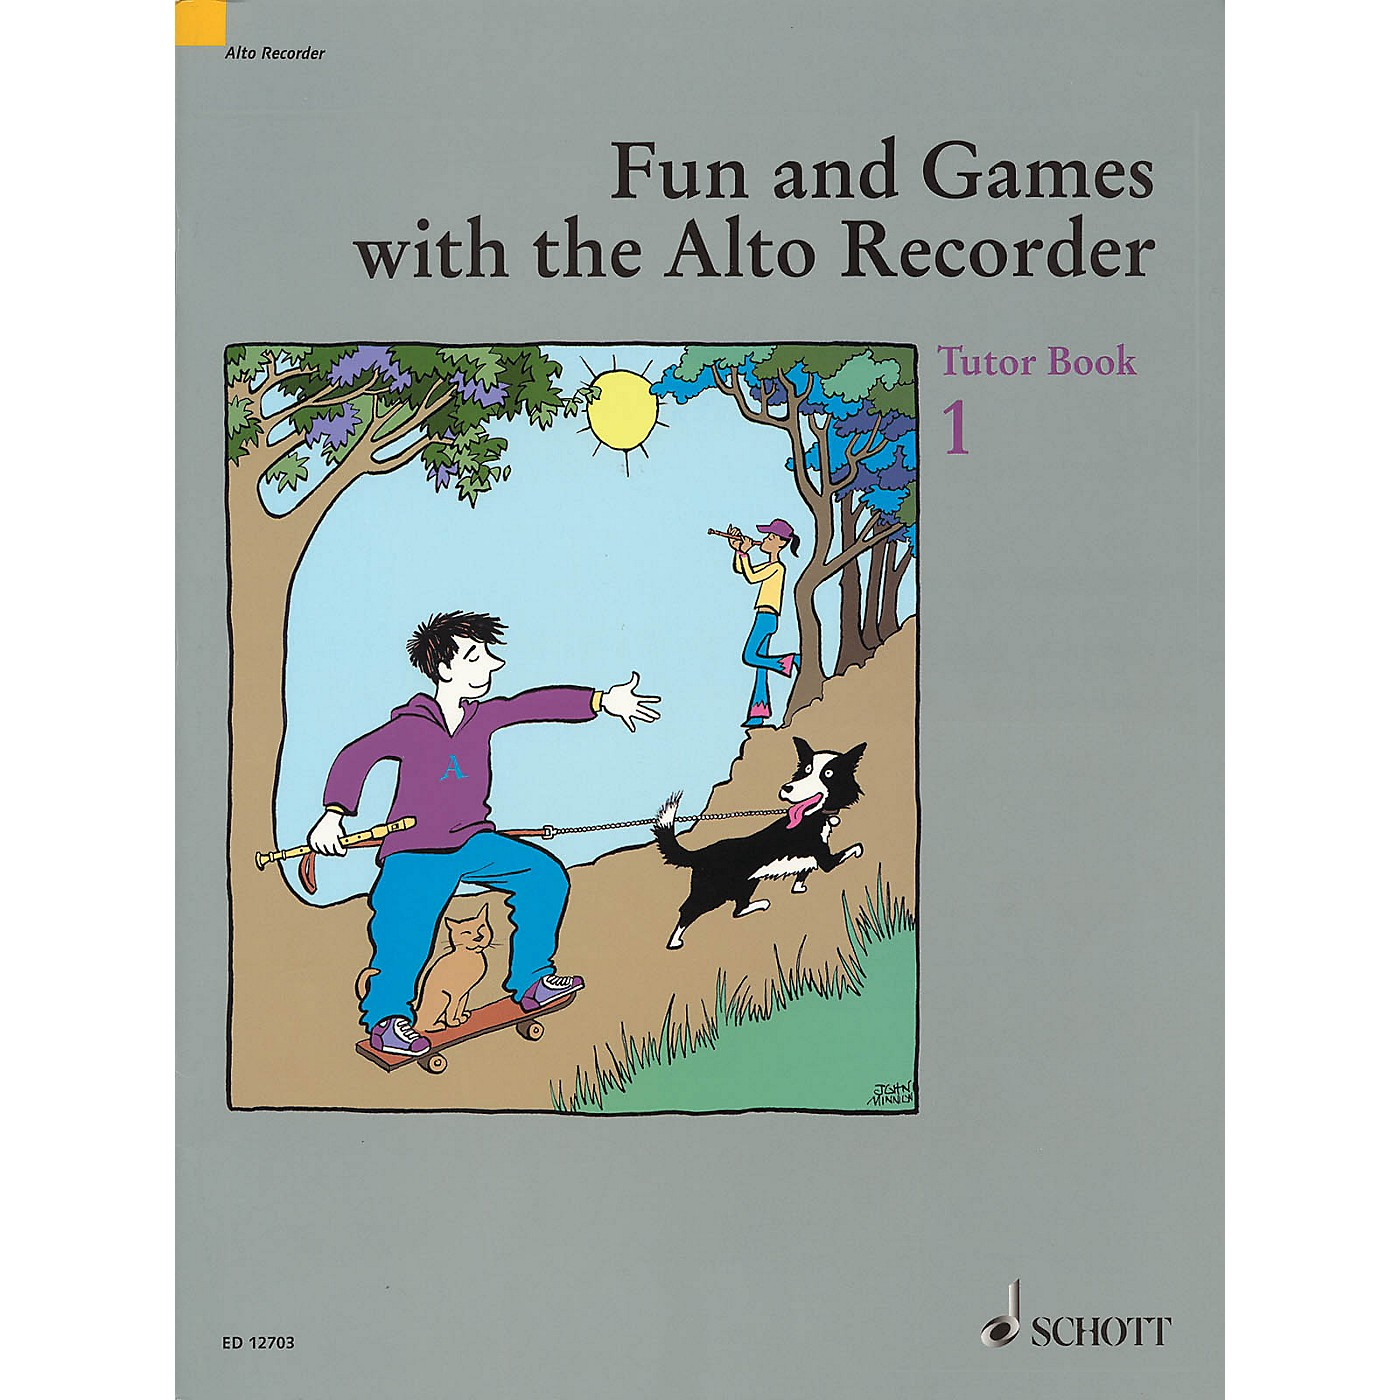 Schott Fun and Games with the Alto Recorder (Tutor Book 1) Schott Series thumbnail